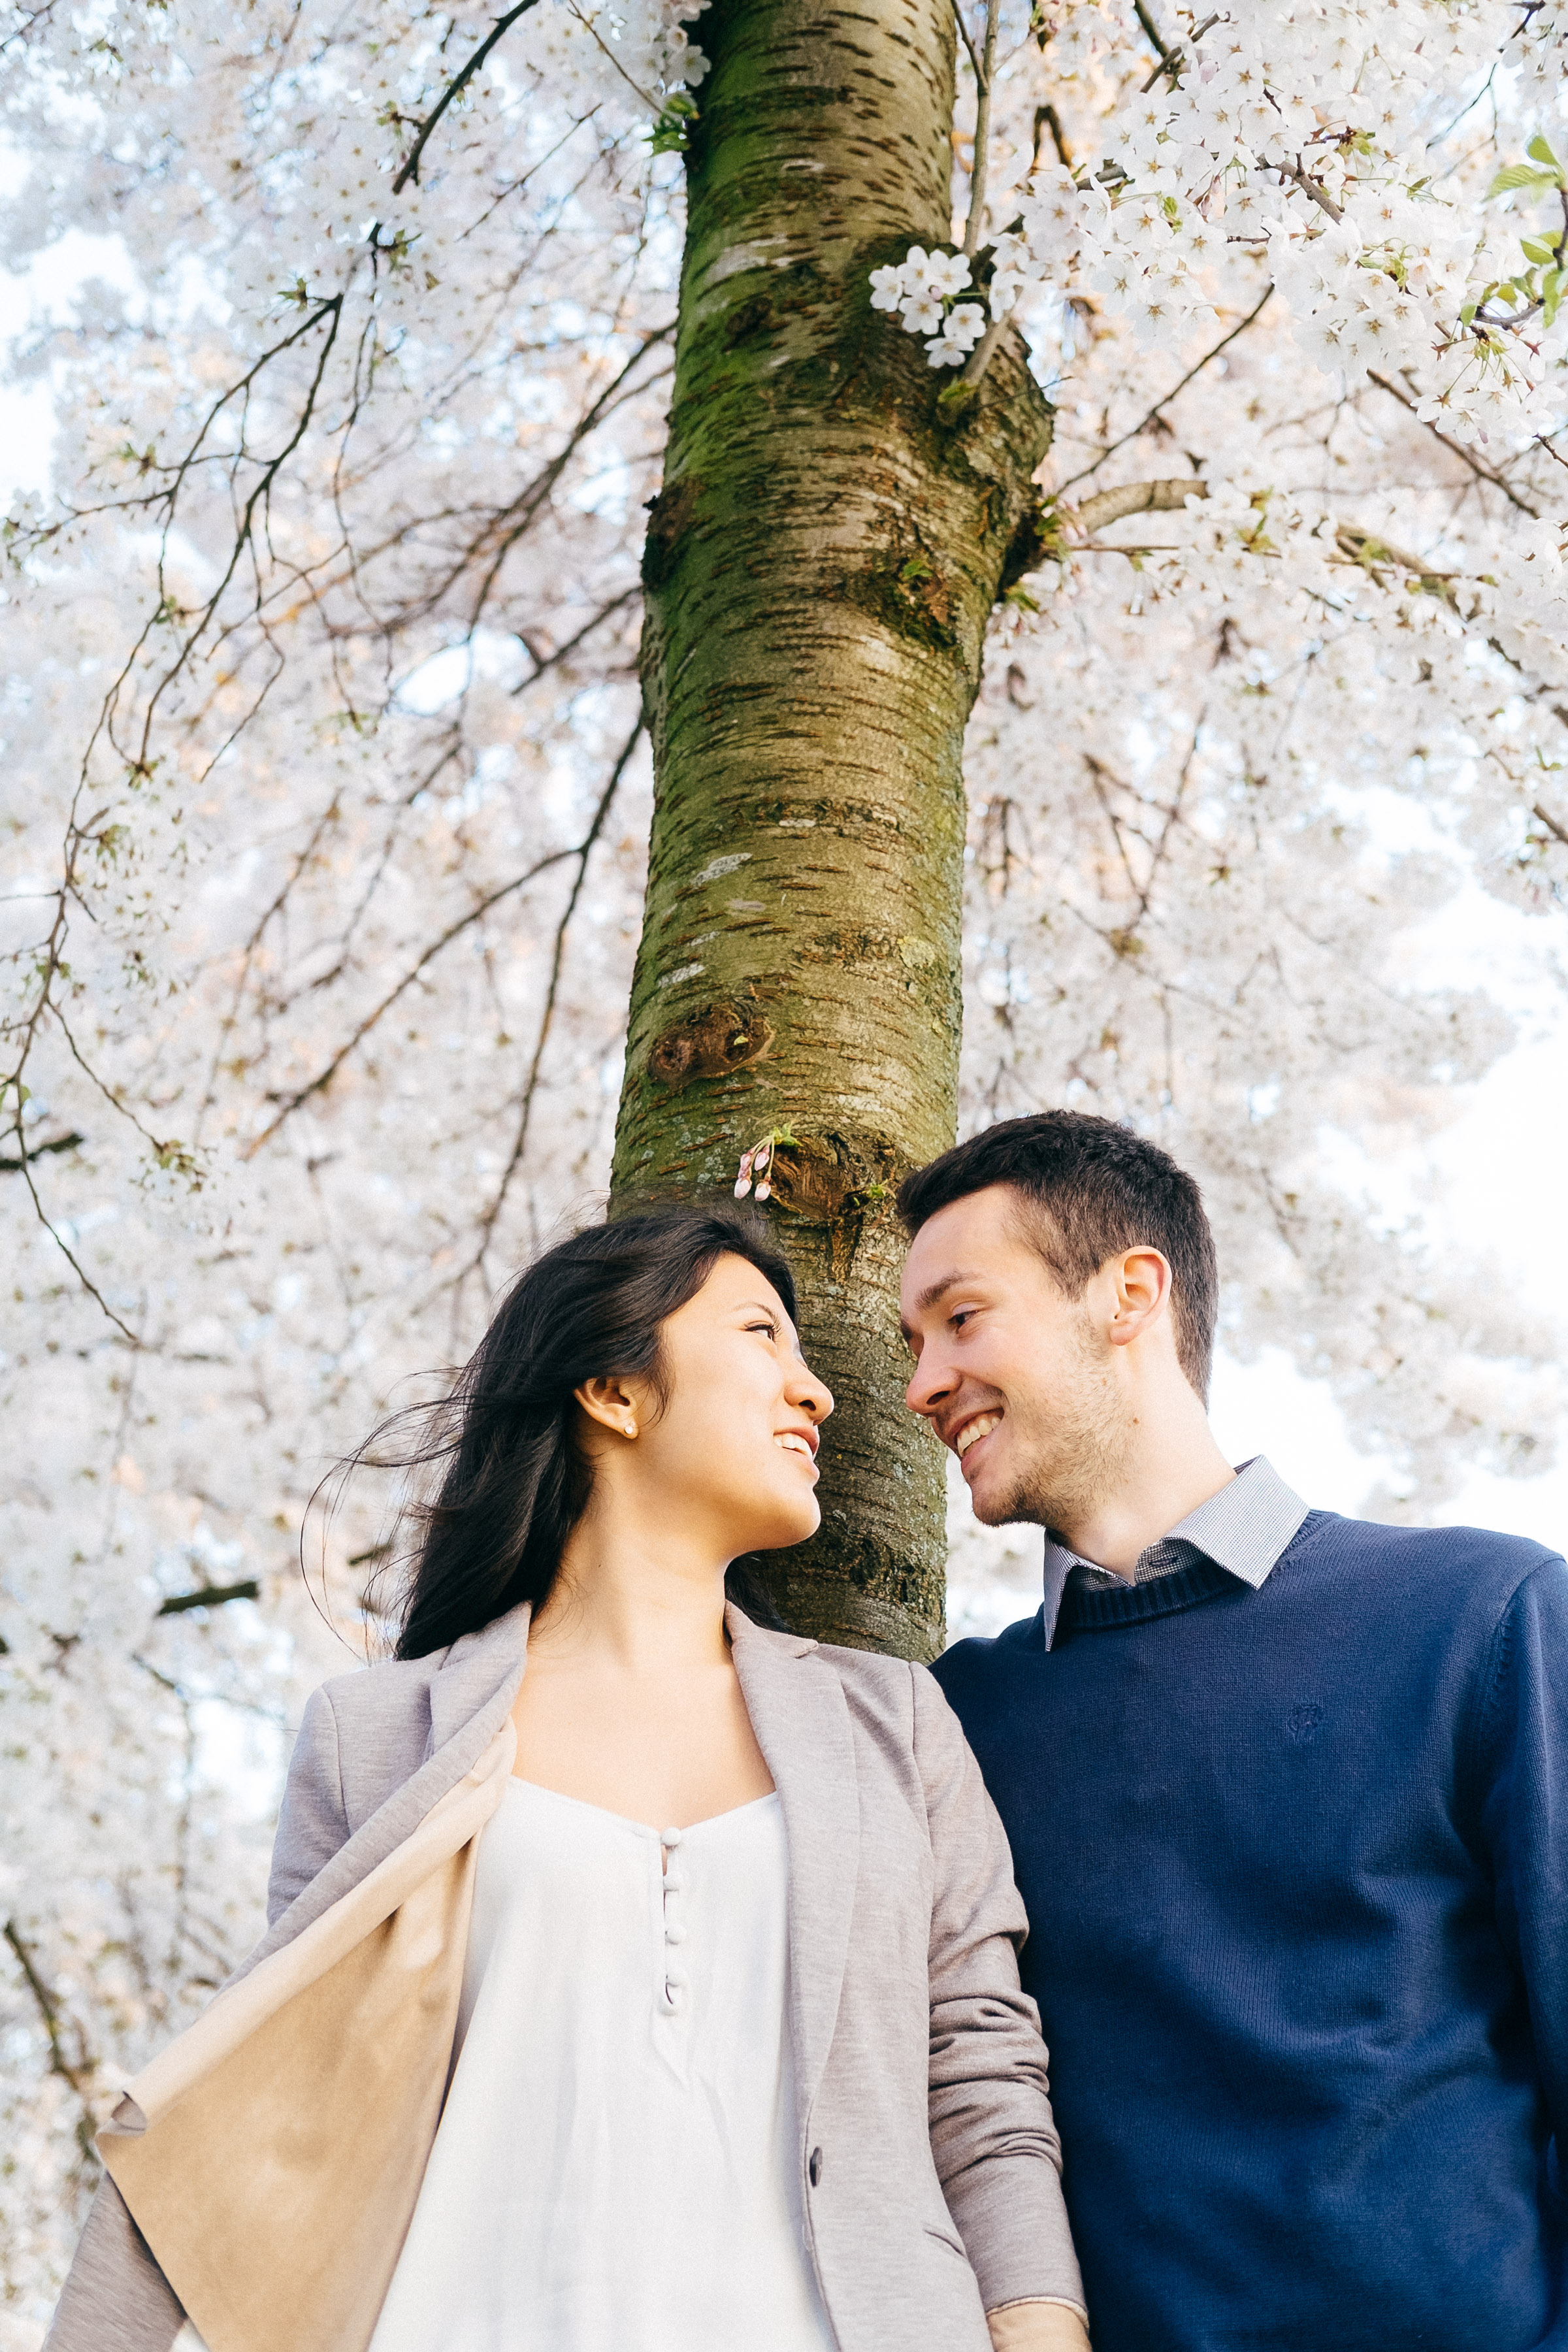 Thao & Janik in Amsterdam (36 of 51) - Jan Arsenovic Photography.jpg